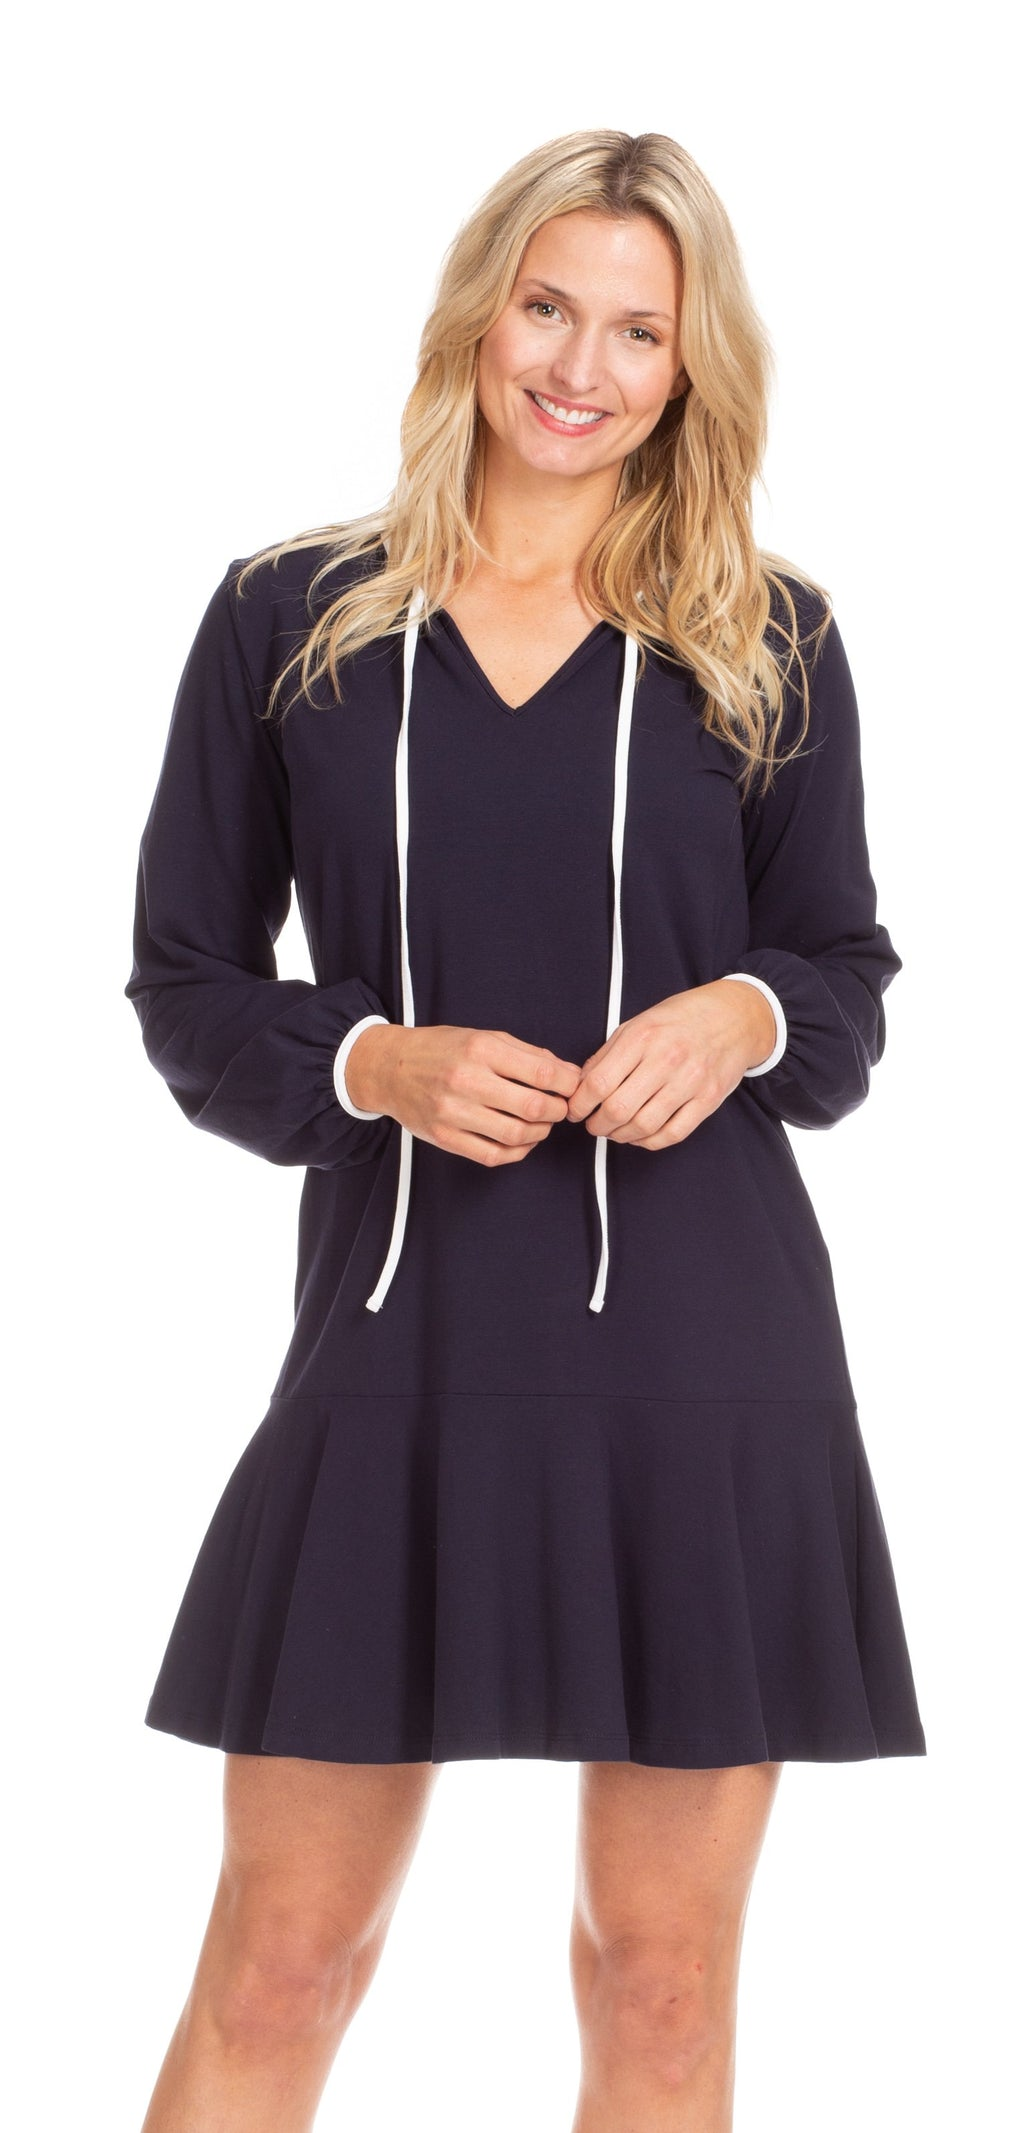 DUFFIELD LANE NAVY MIA DRESS